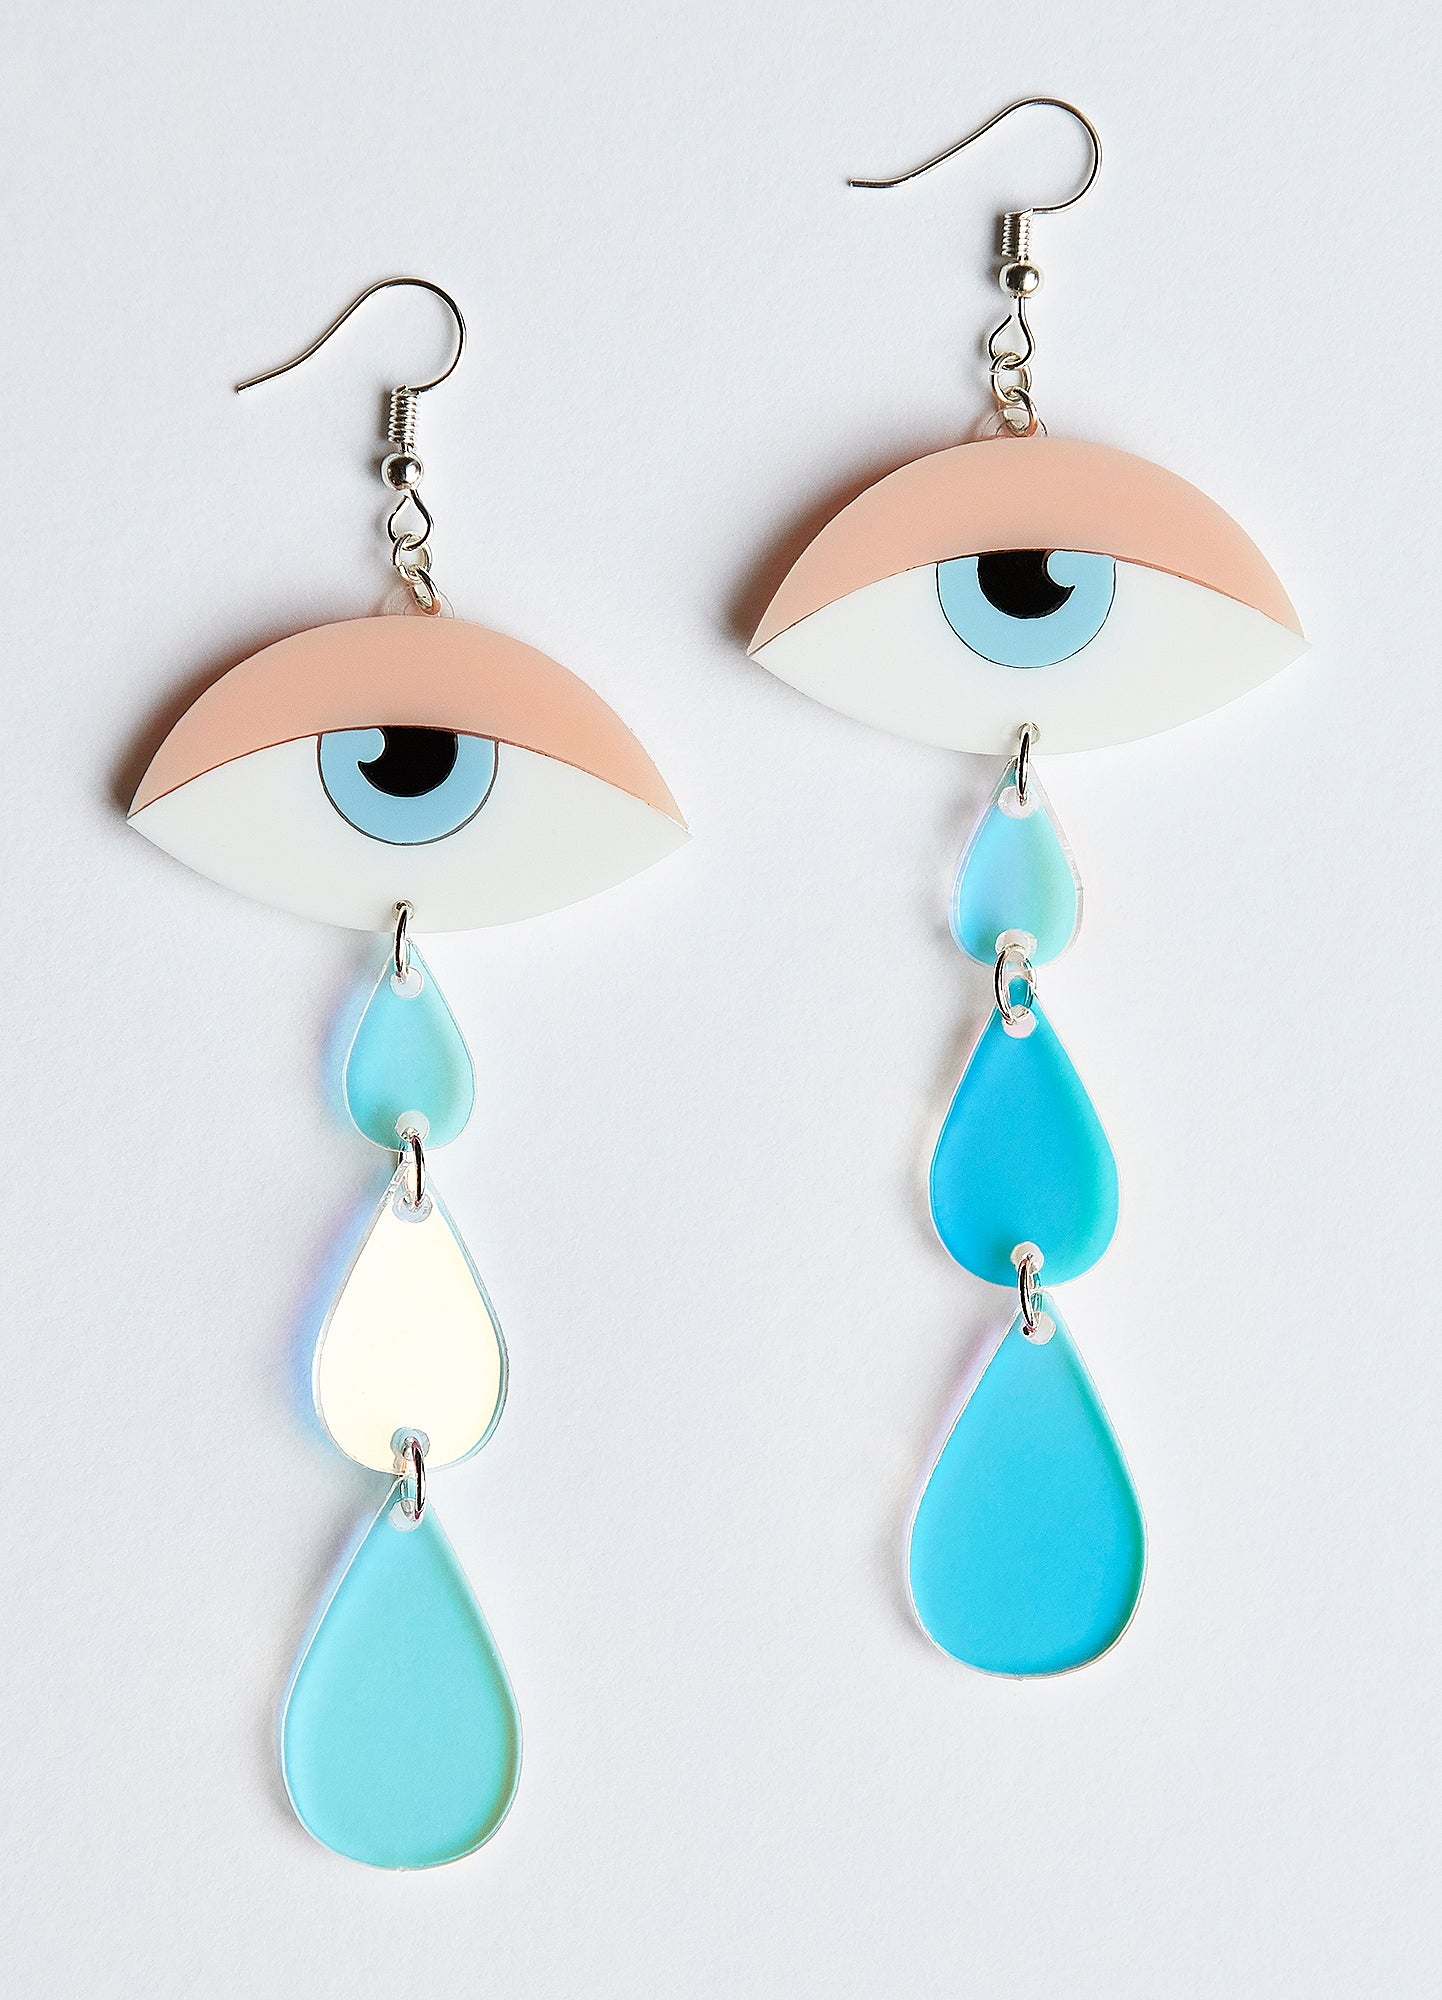 Cry Baby earrings